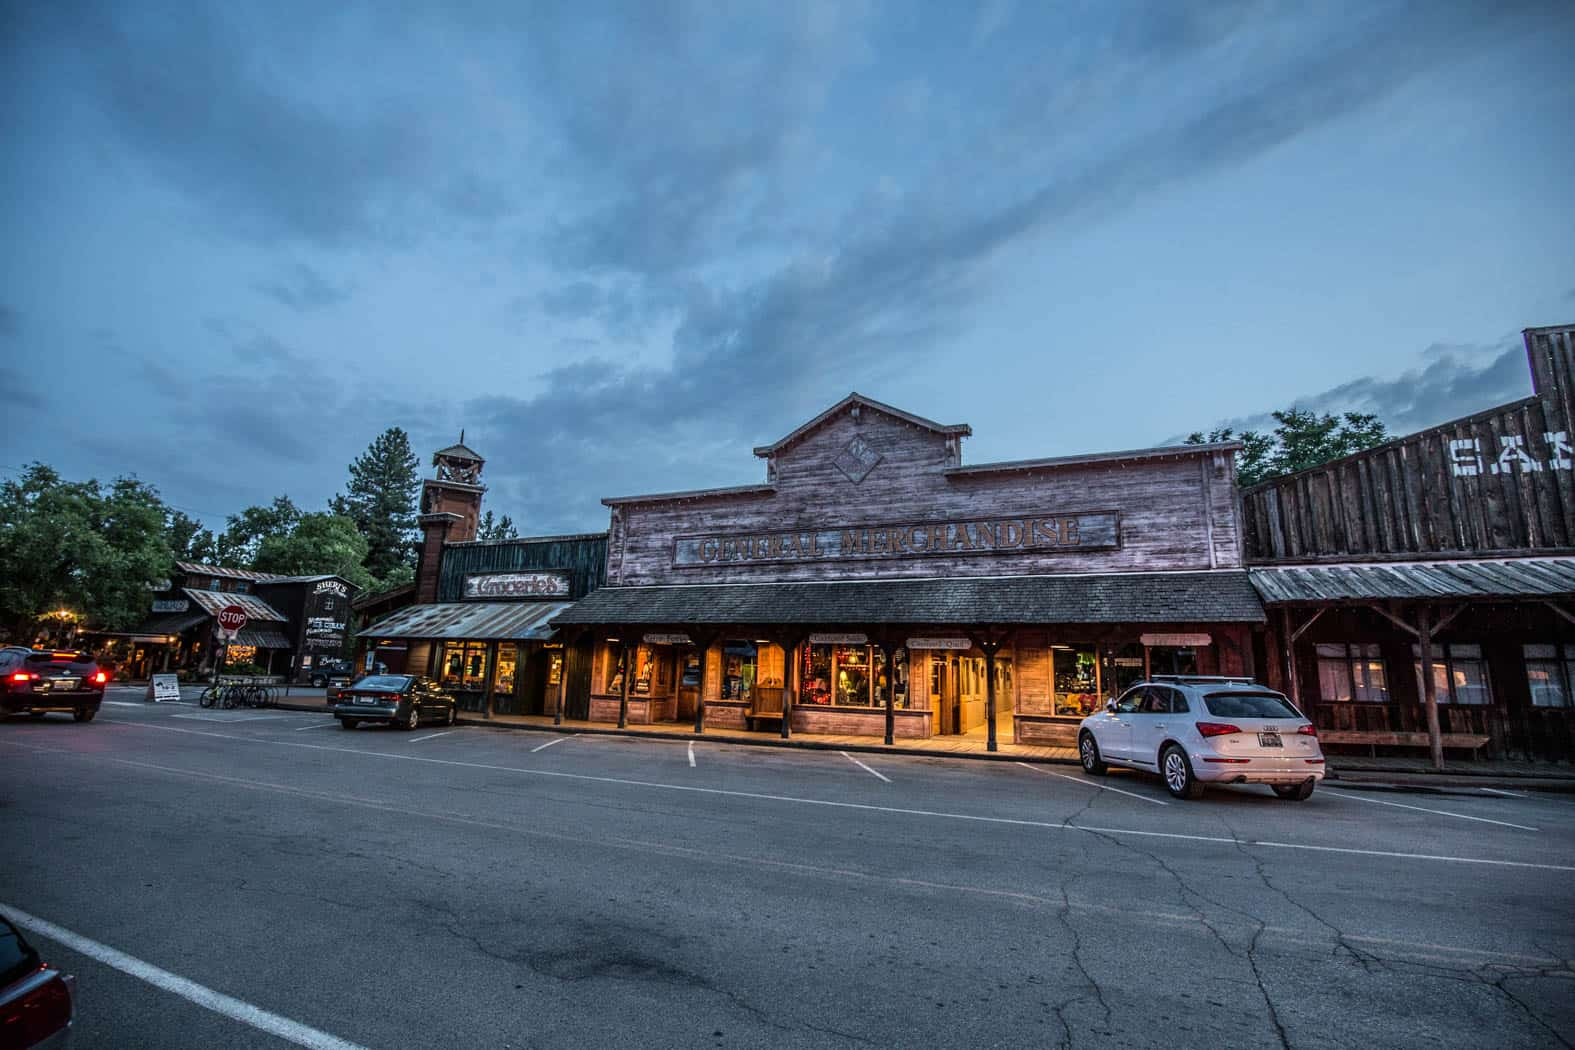 General Store in Winthrop in Washington State